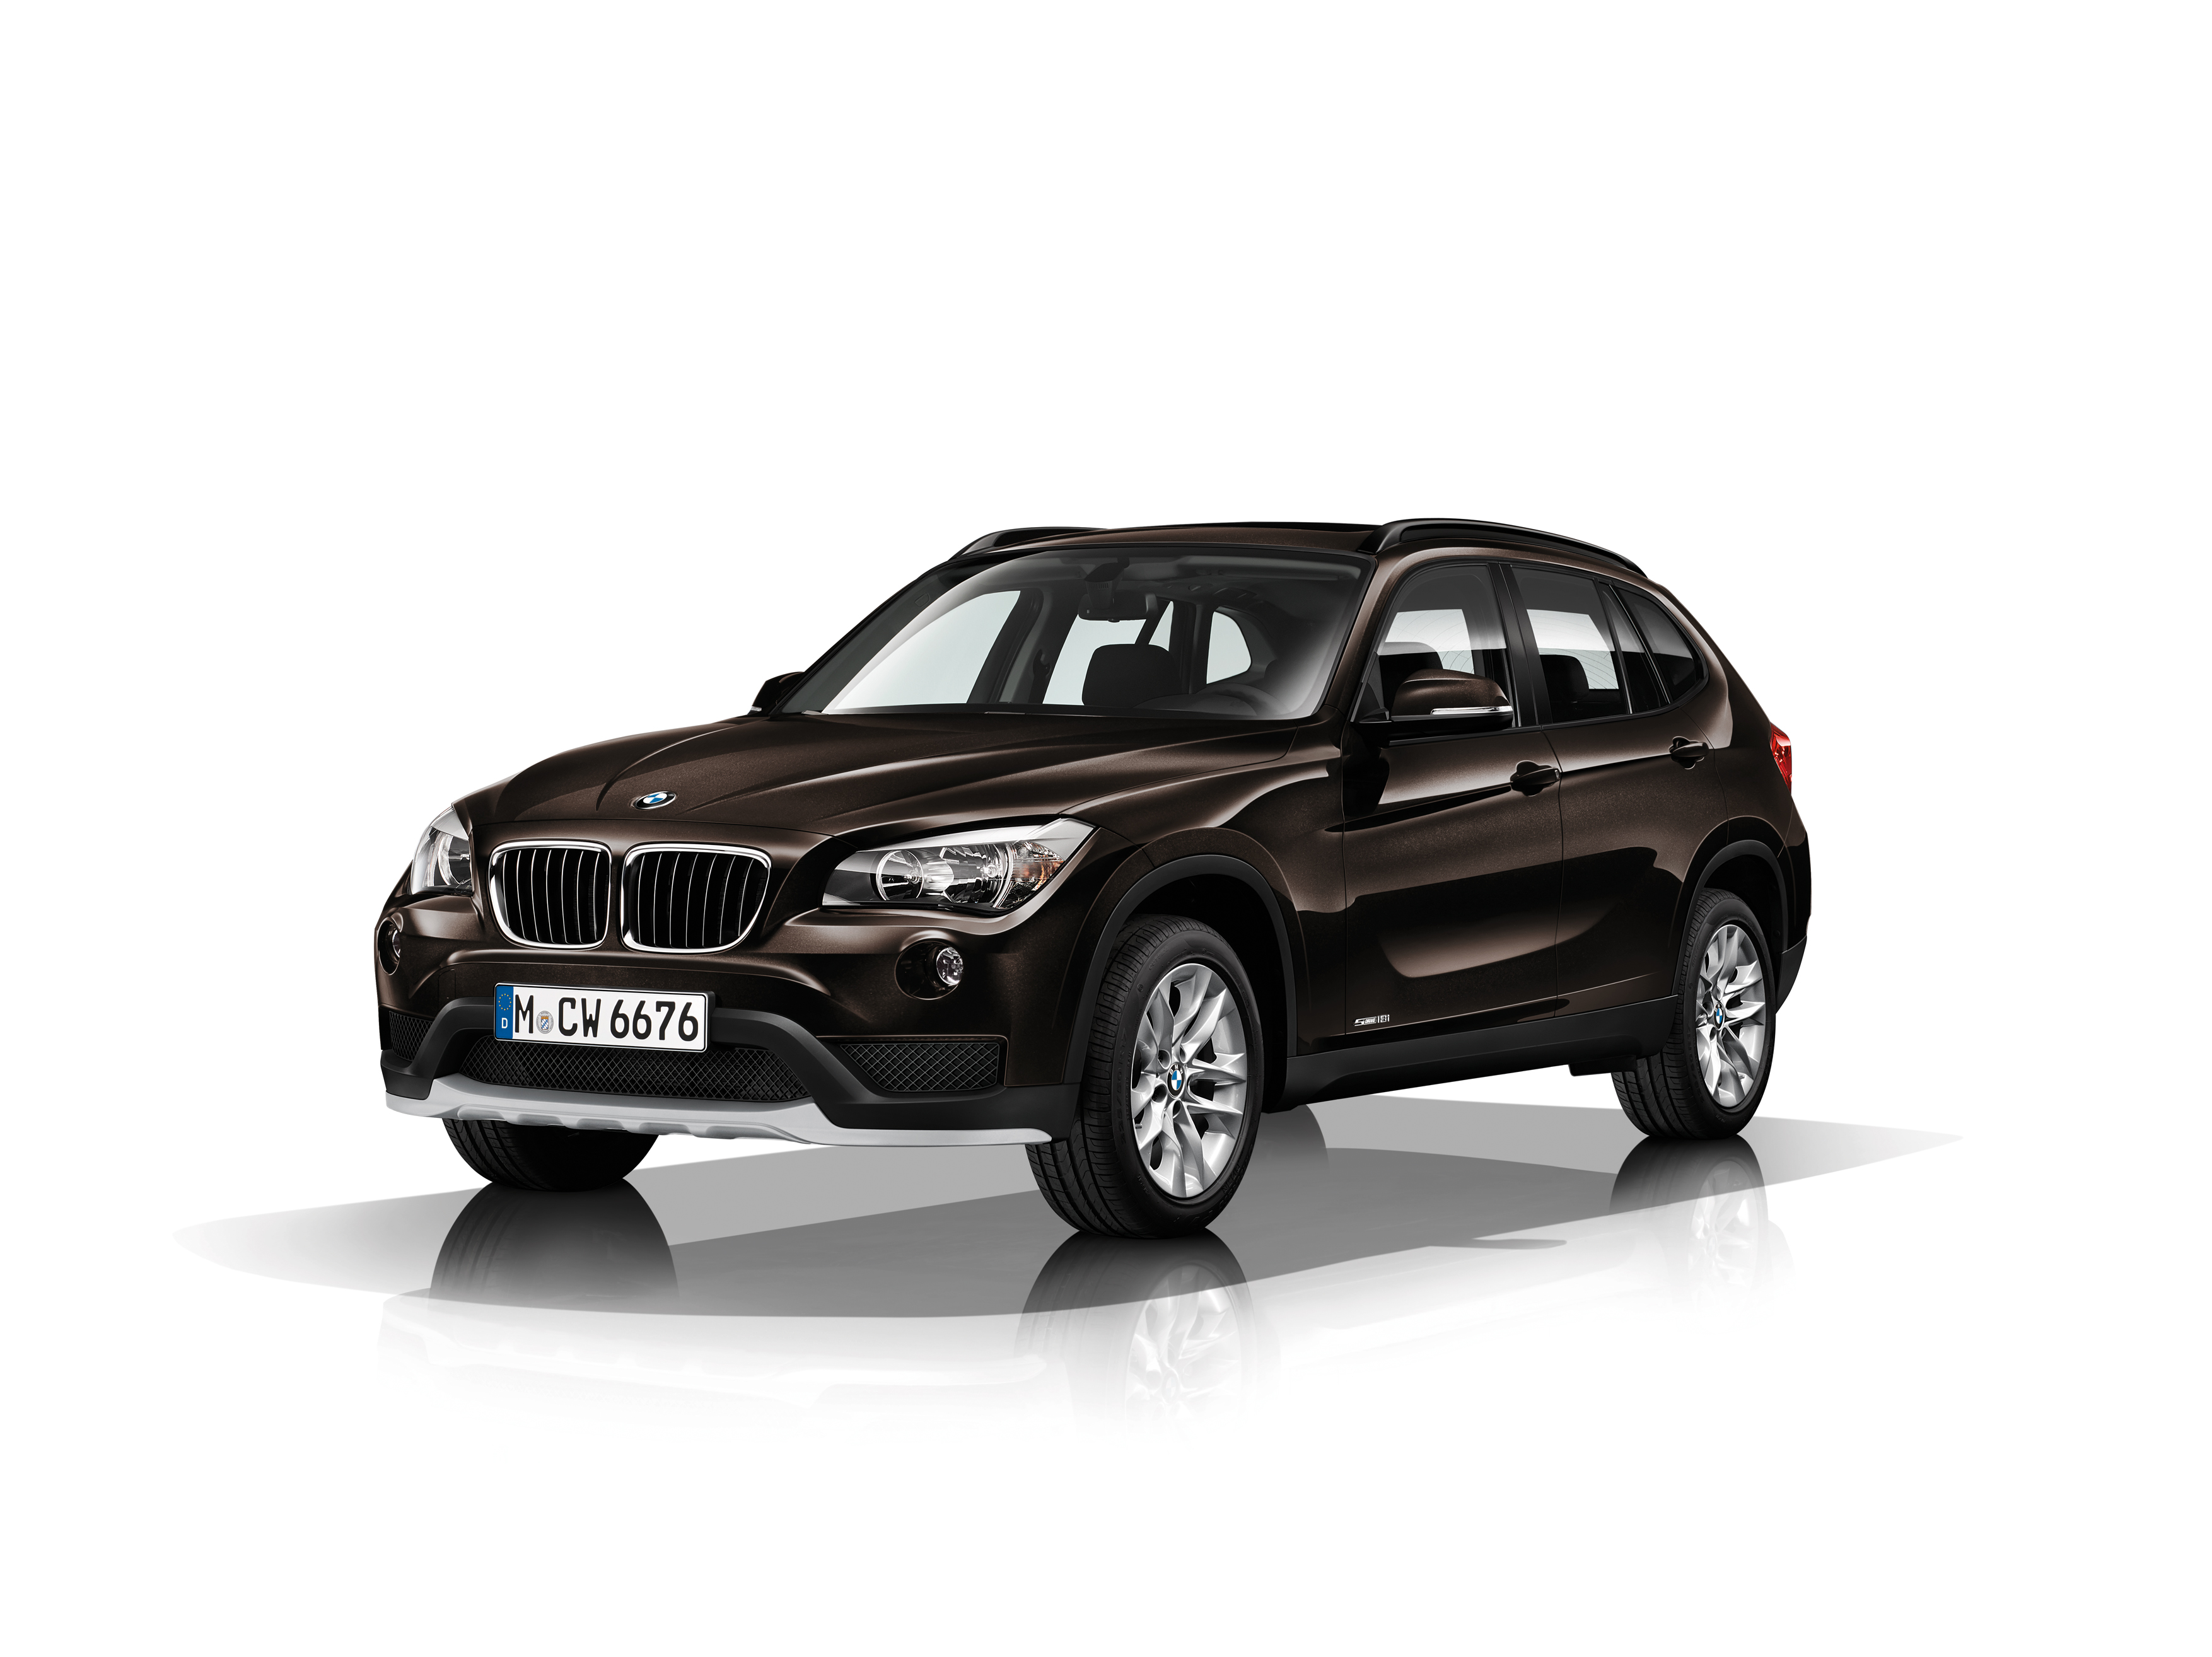 bmw x1 styling refreshes and tech upgrades for 2014 bimmerfile. Black Bedroom Furniture Sets. Home Design Ideas